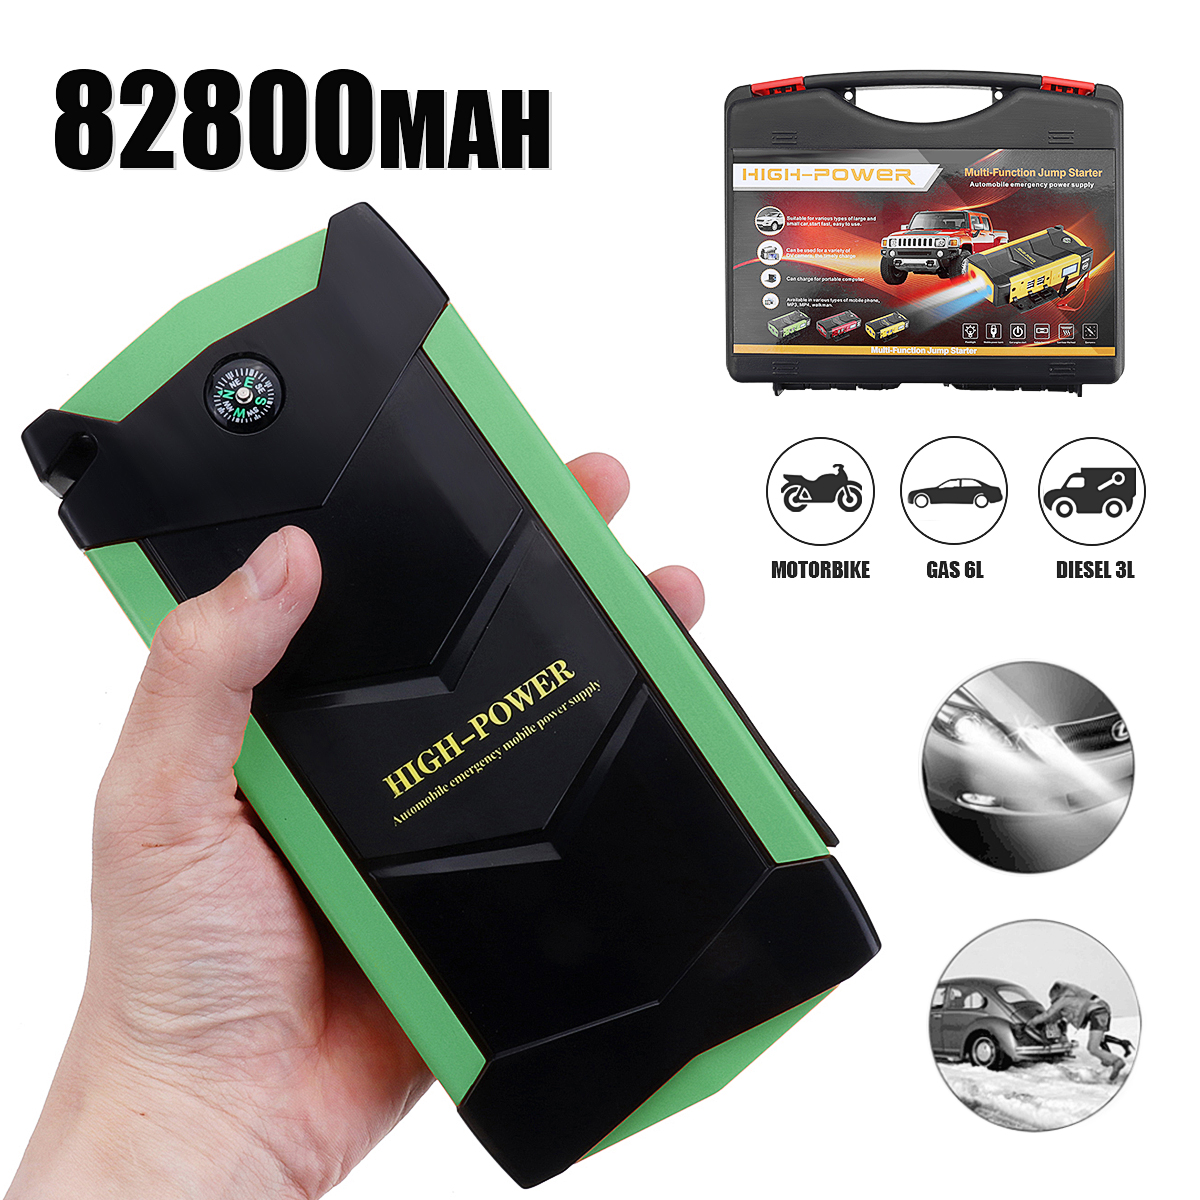 12V 82800mAh 4USB High Power Car Jump Starter Battery Charger Starting Car Booster Power Bank Tool Kit For Auto Starting Device 12v mini portable 82800mah led car jump starter engine auto emergency starting device power bank car phone charger with 4usb